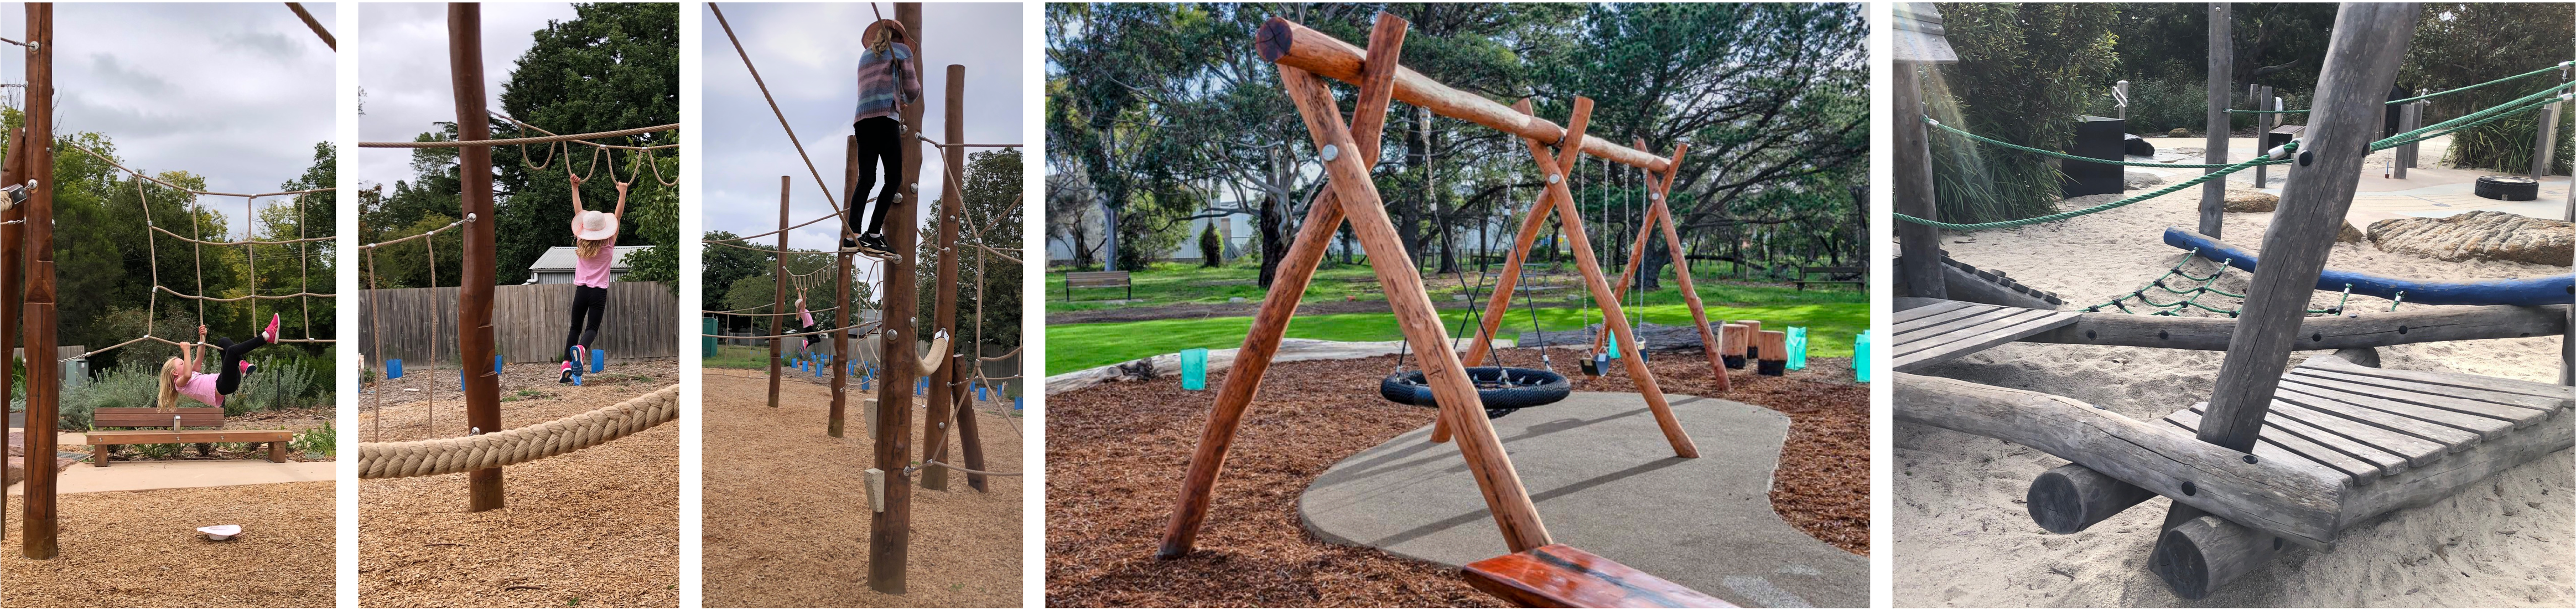 Five images of wooden climbing and swinging play equipment